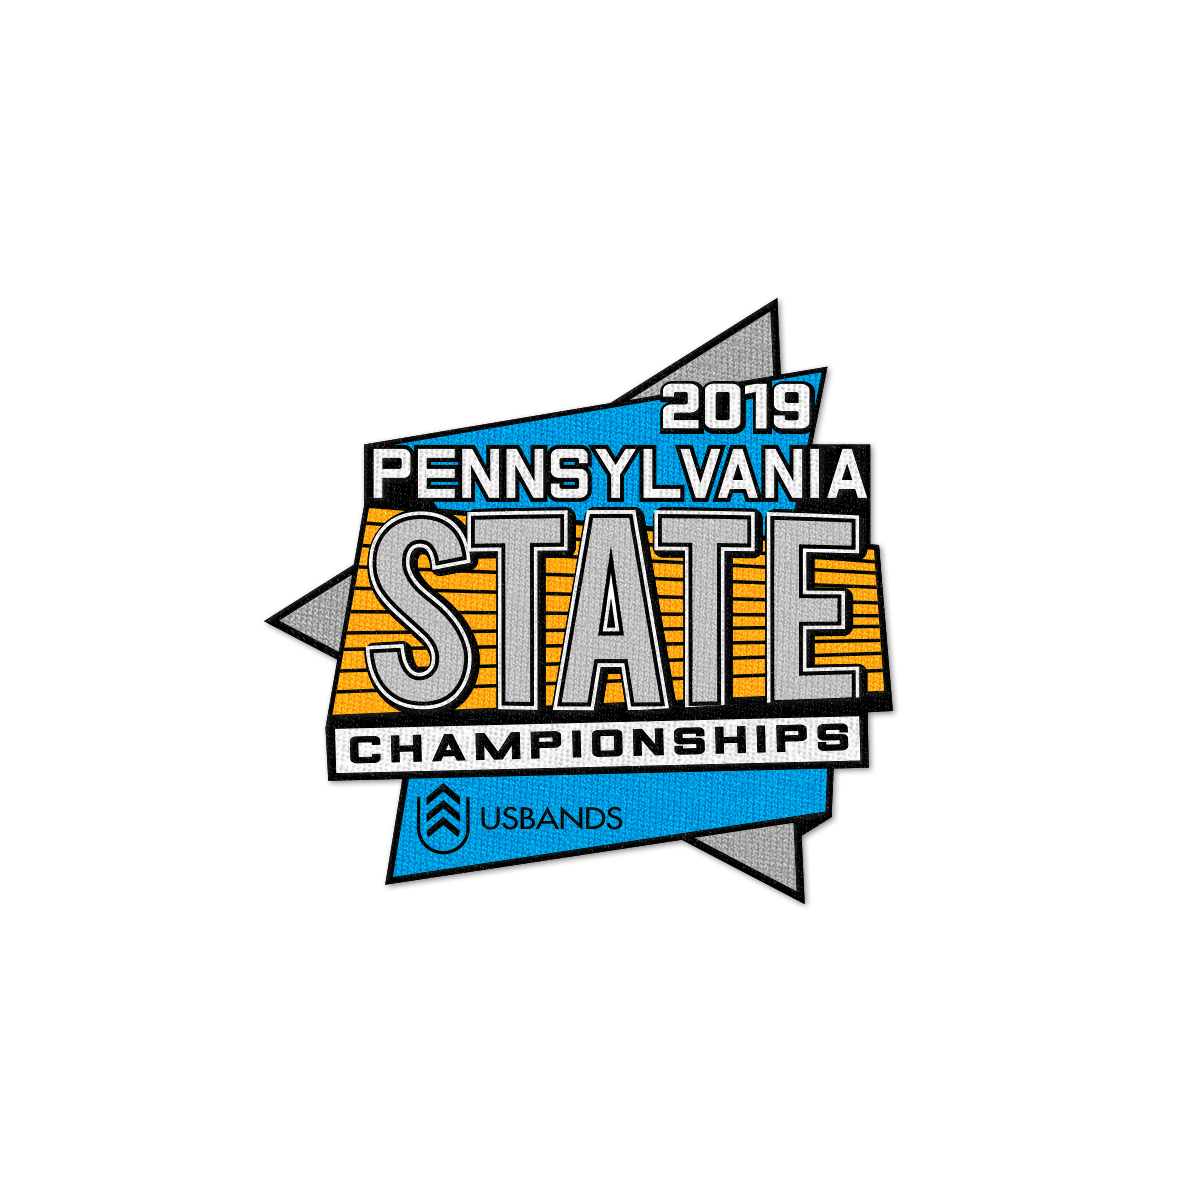 2019 USBands Pennsylvania State  Championship Patch